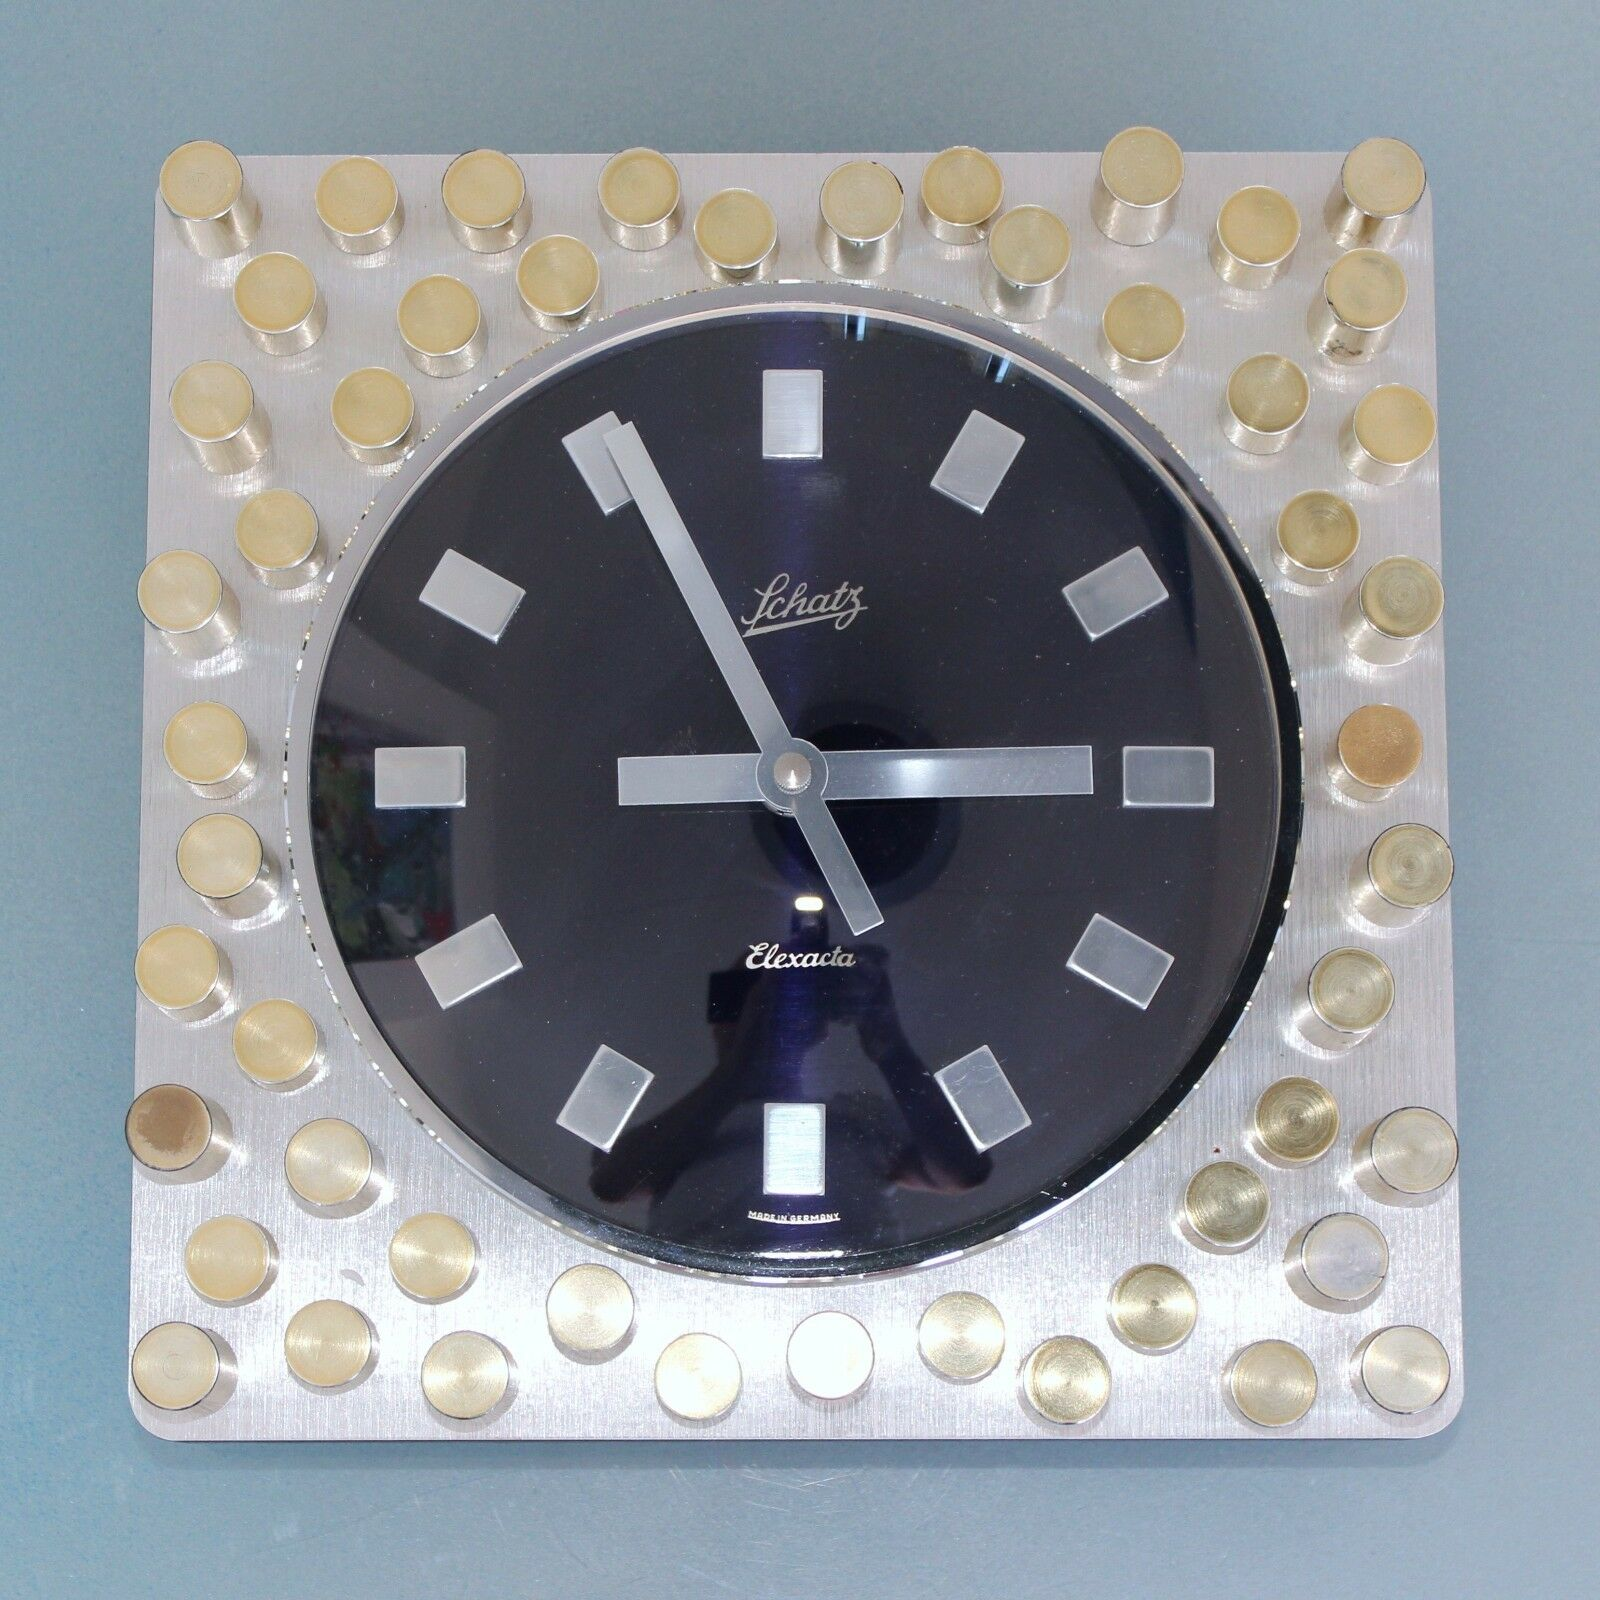 Clock Wall Schatz Elexacta Top Germany Mid Century Cut